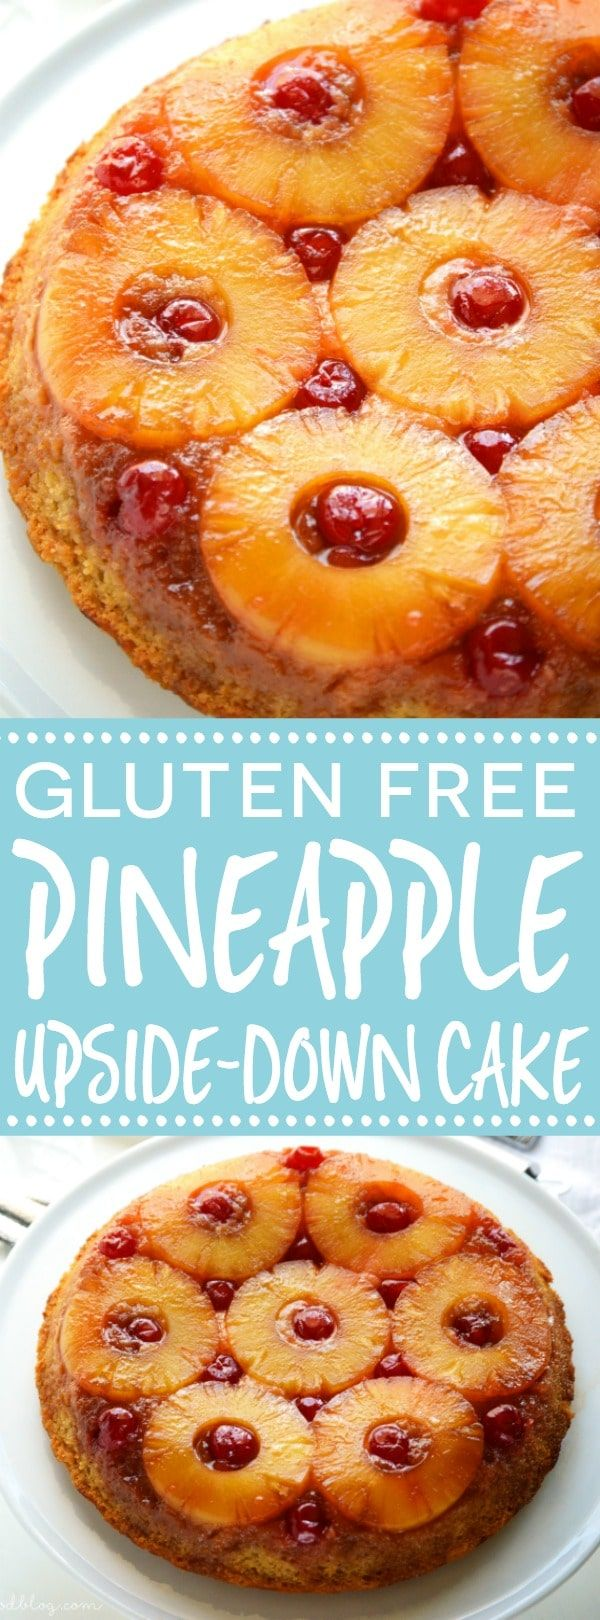 Easy and DELICIOUS gluten free pineapple upside-down cake! This recipe is a keeper and has gotten rave reviews! Easy gluten free dessert recipe from @whattheforkblog | whattheforkfoodblog.com | gluten free baking | the best gluten free recipes | highly ra